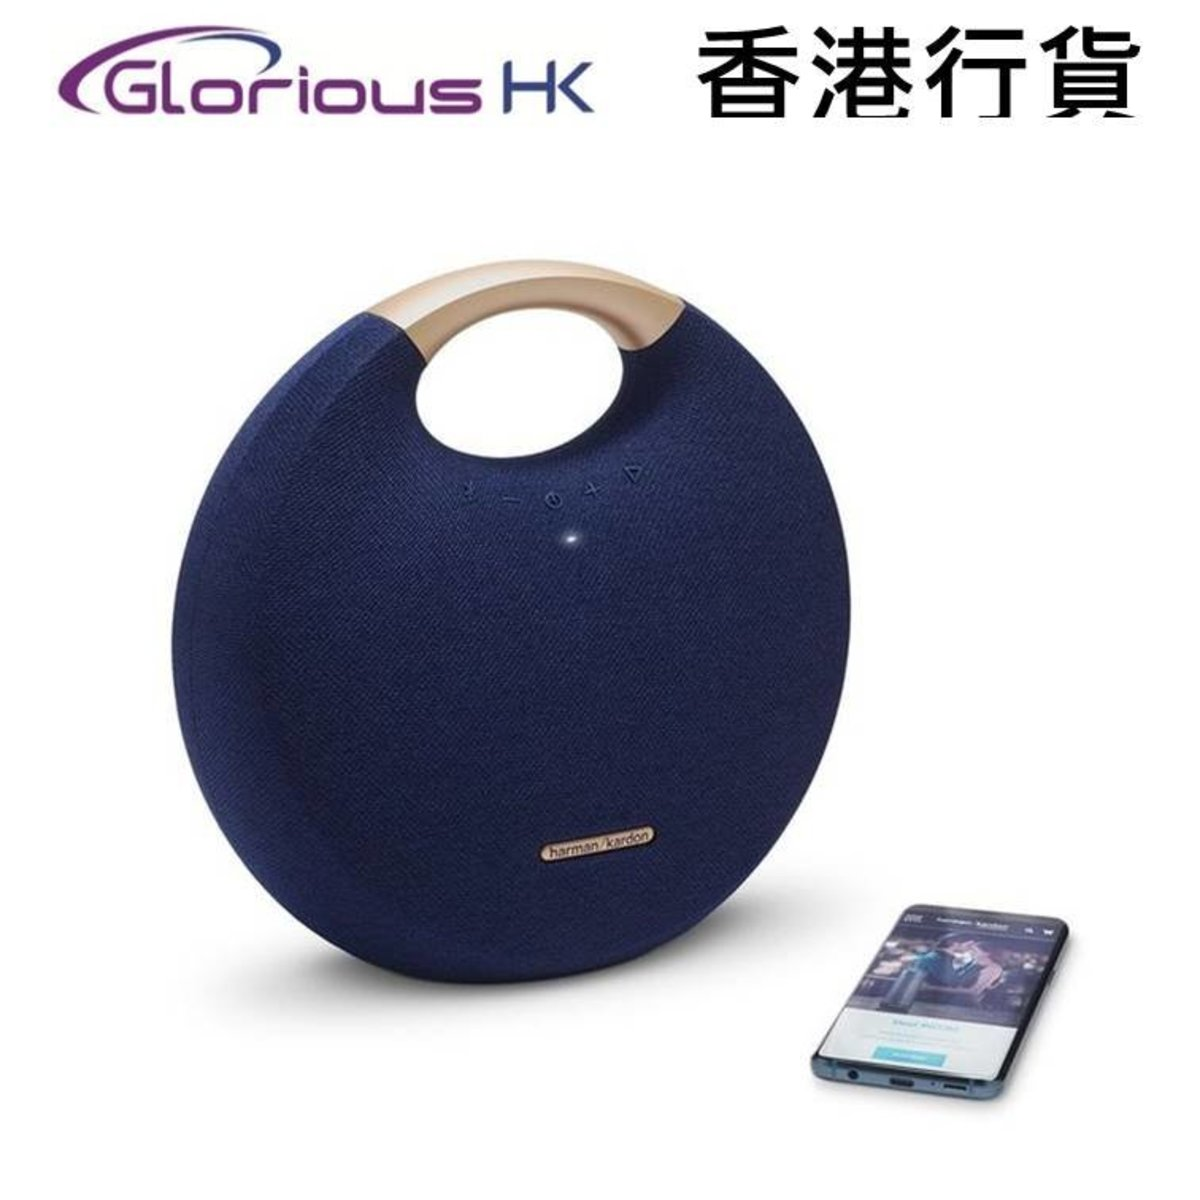 ONYX STUDIO 6 Wireless Speaker Blue